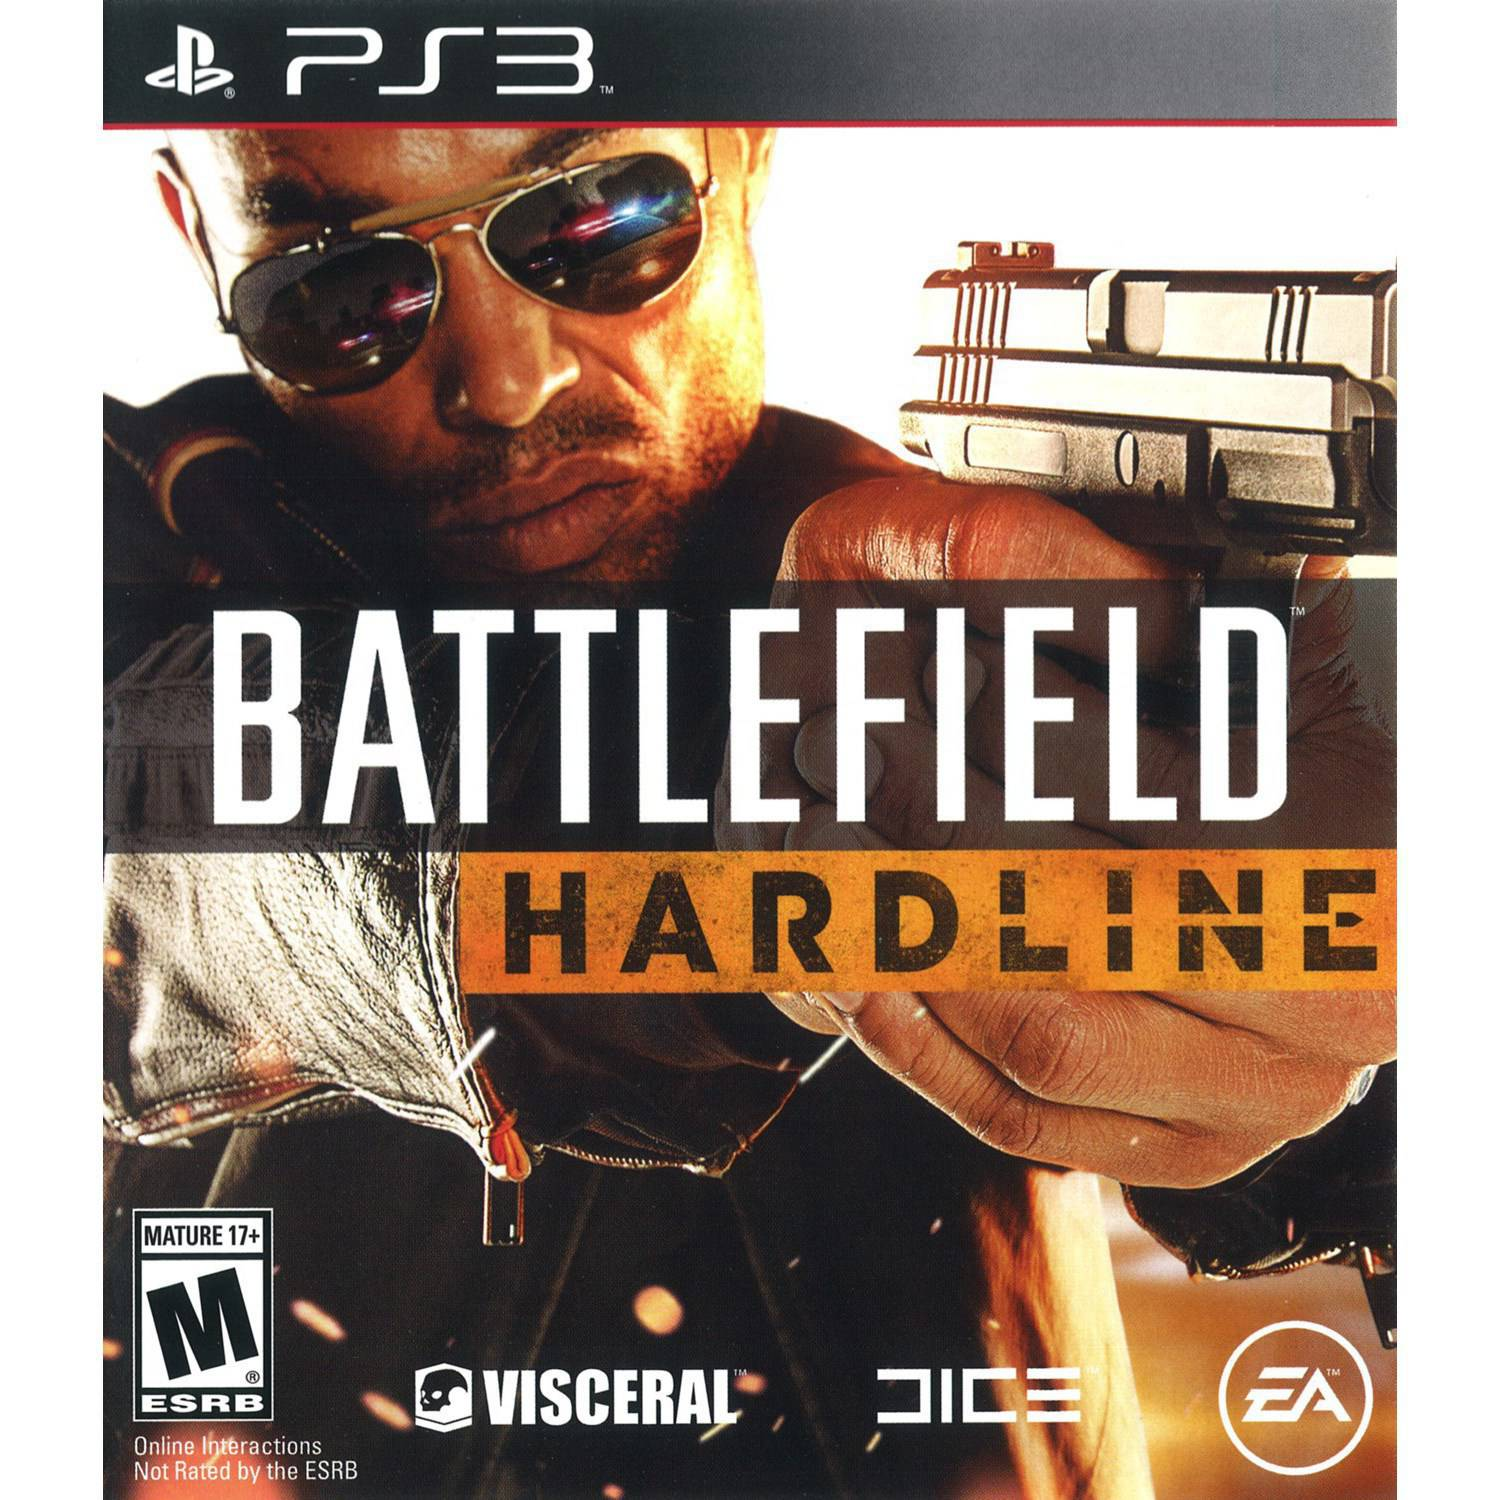 Battlefield Hardline, Electronic Arts, PlayStation 3, 014633732719